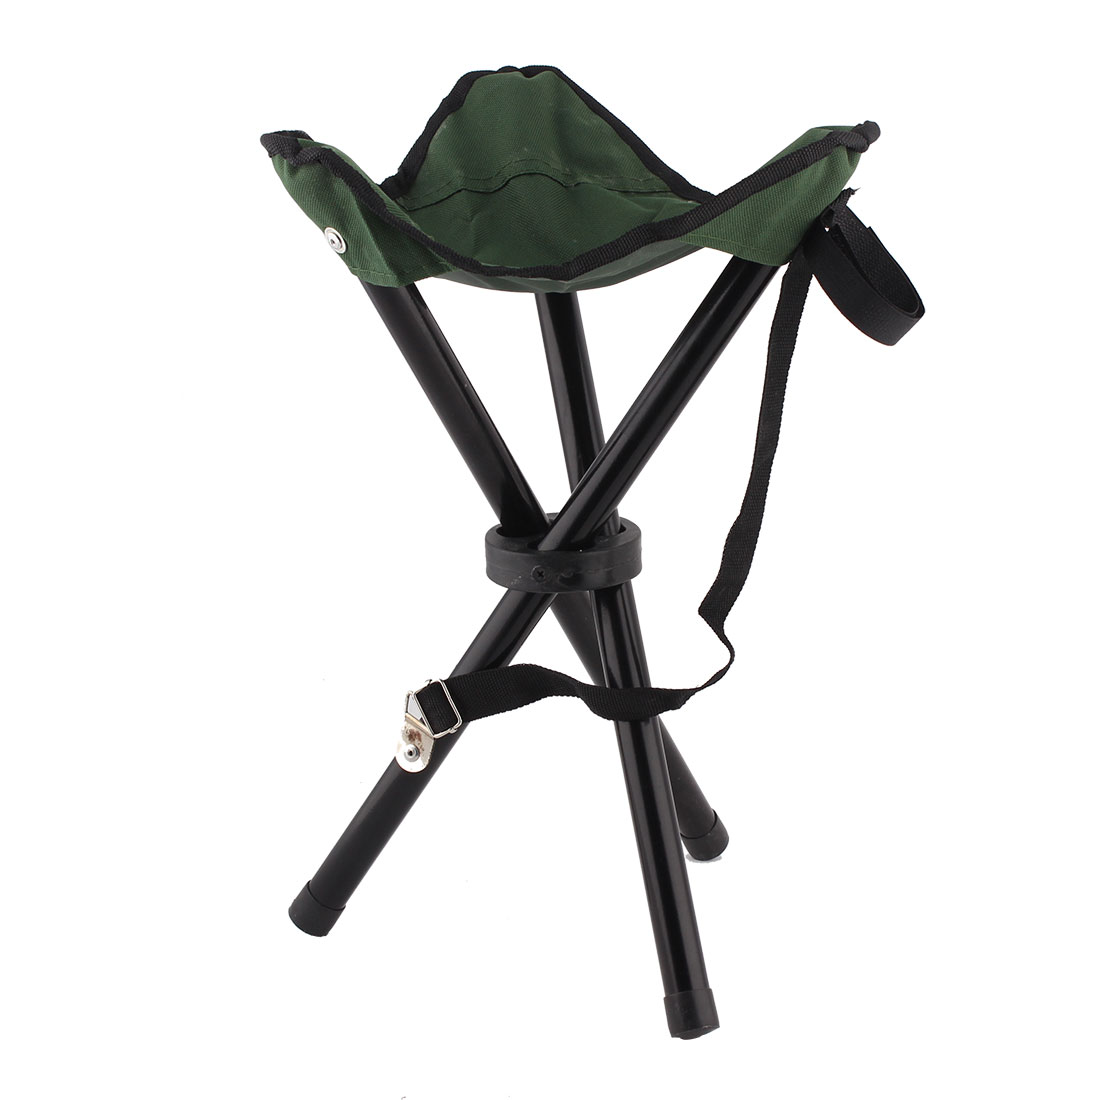 Outdoor Hiking Carriable Folding Bench Pocket Chairs Tripod Seat Stool Green